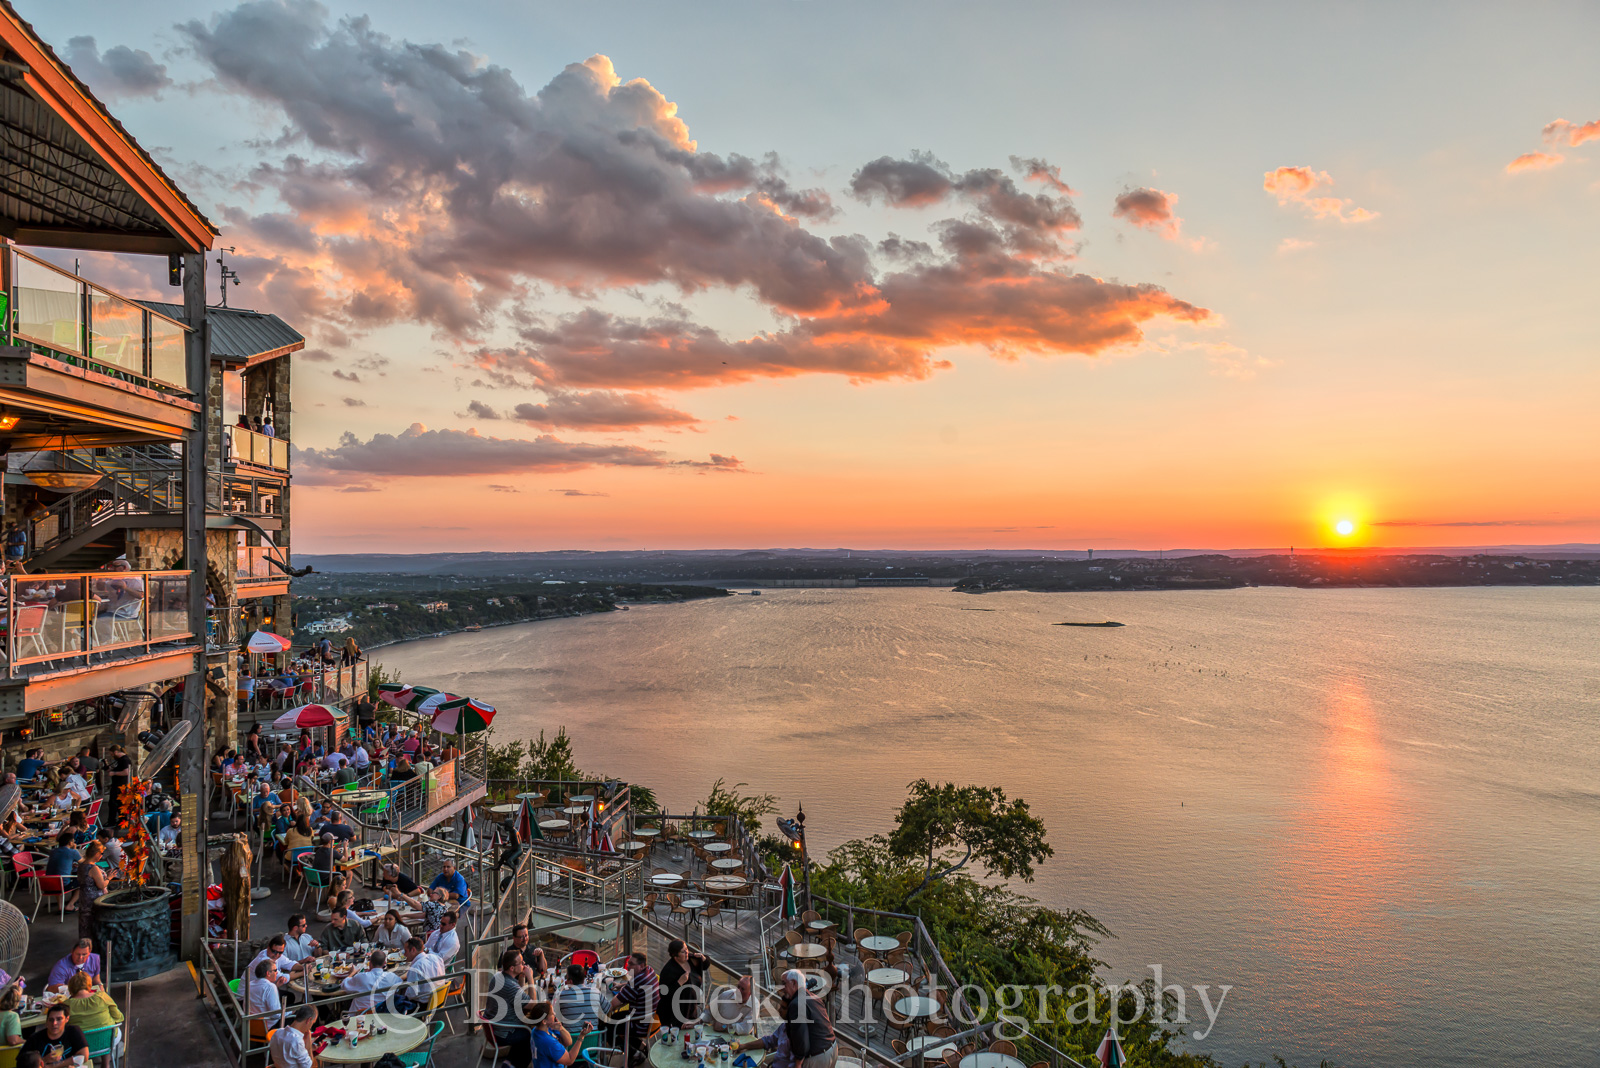 Austin, Hill Country, Lake Travis, Oasis, boating, clouds, colorful, colors, landscape, landscapes, lifestyle, lifestyles, orange, people, reds, restaurant, sunset, sunsets, texas, tourist, water, photo